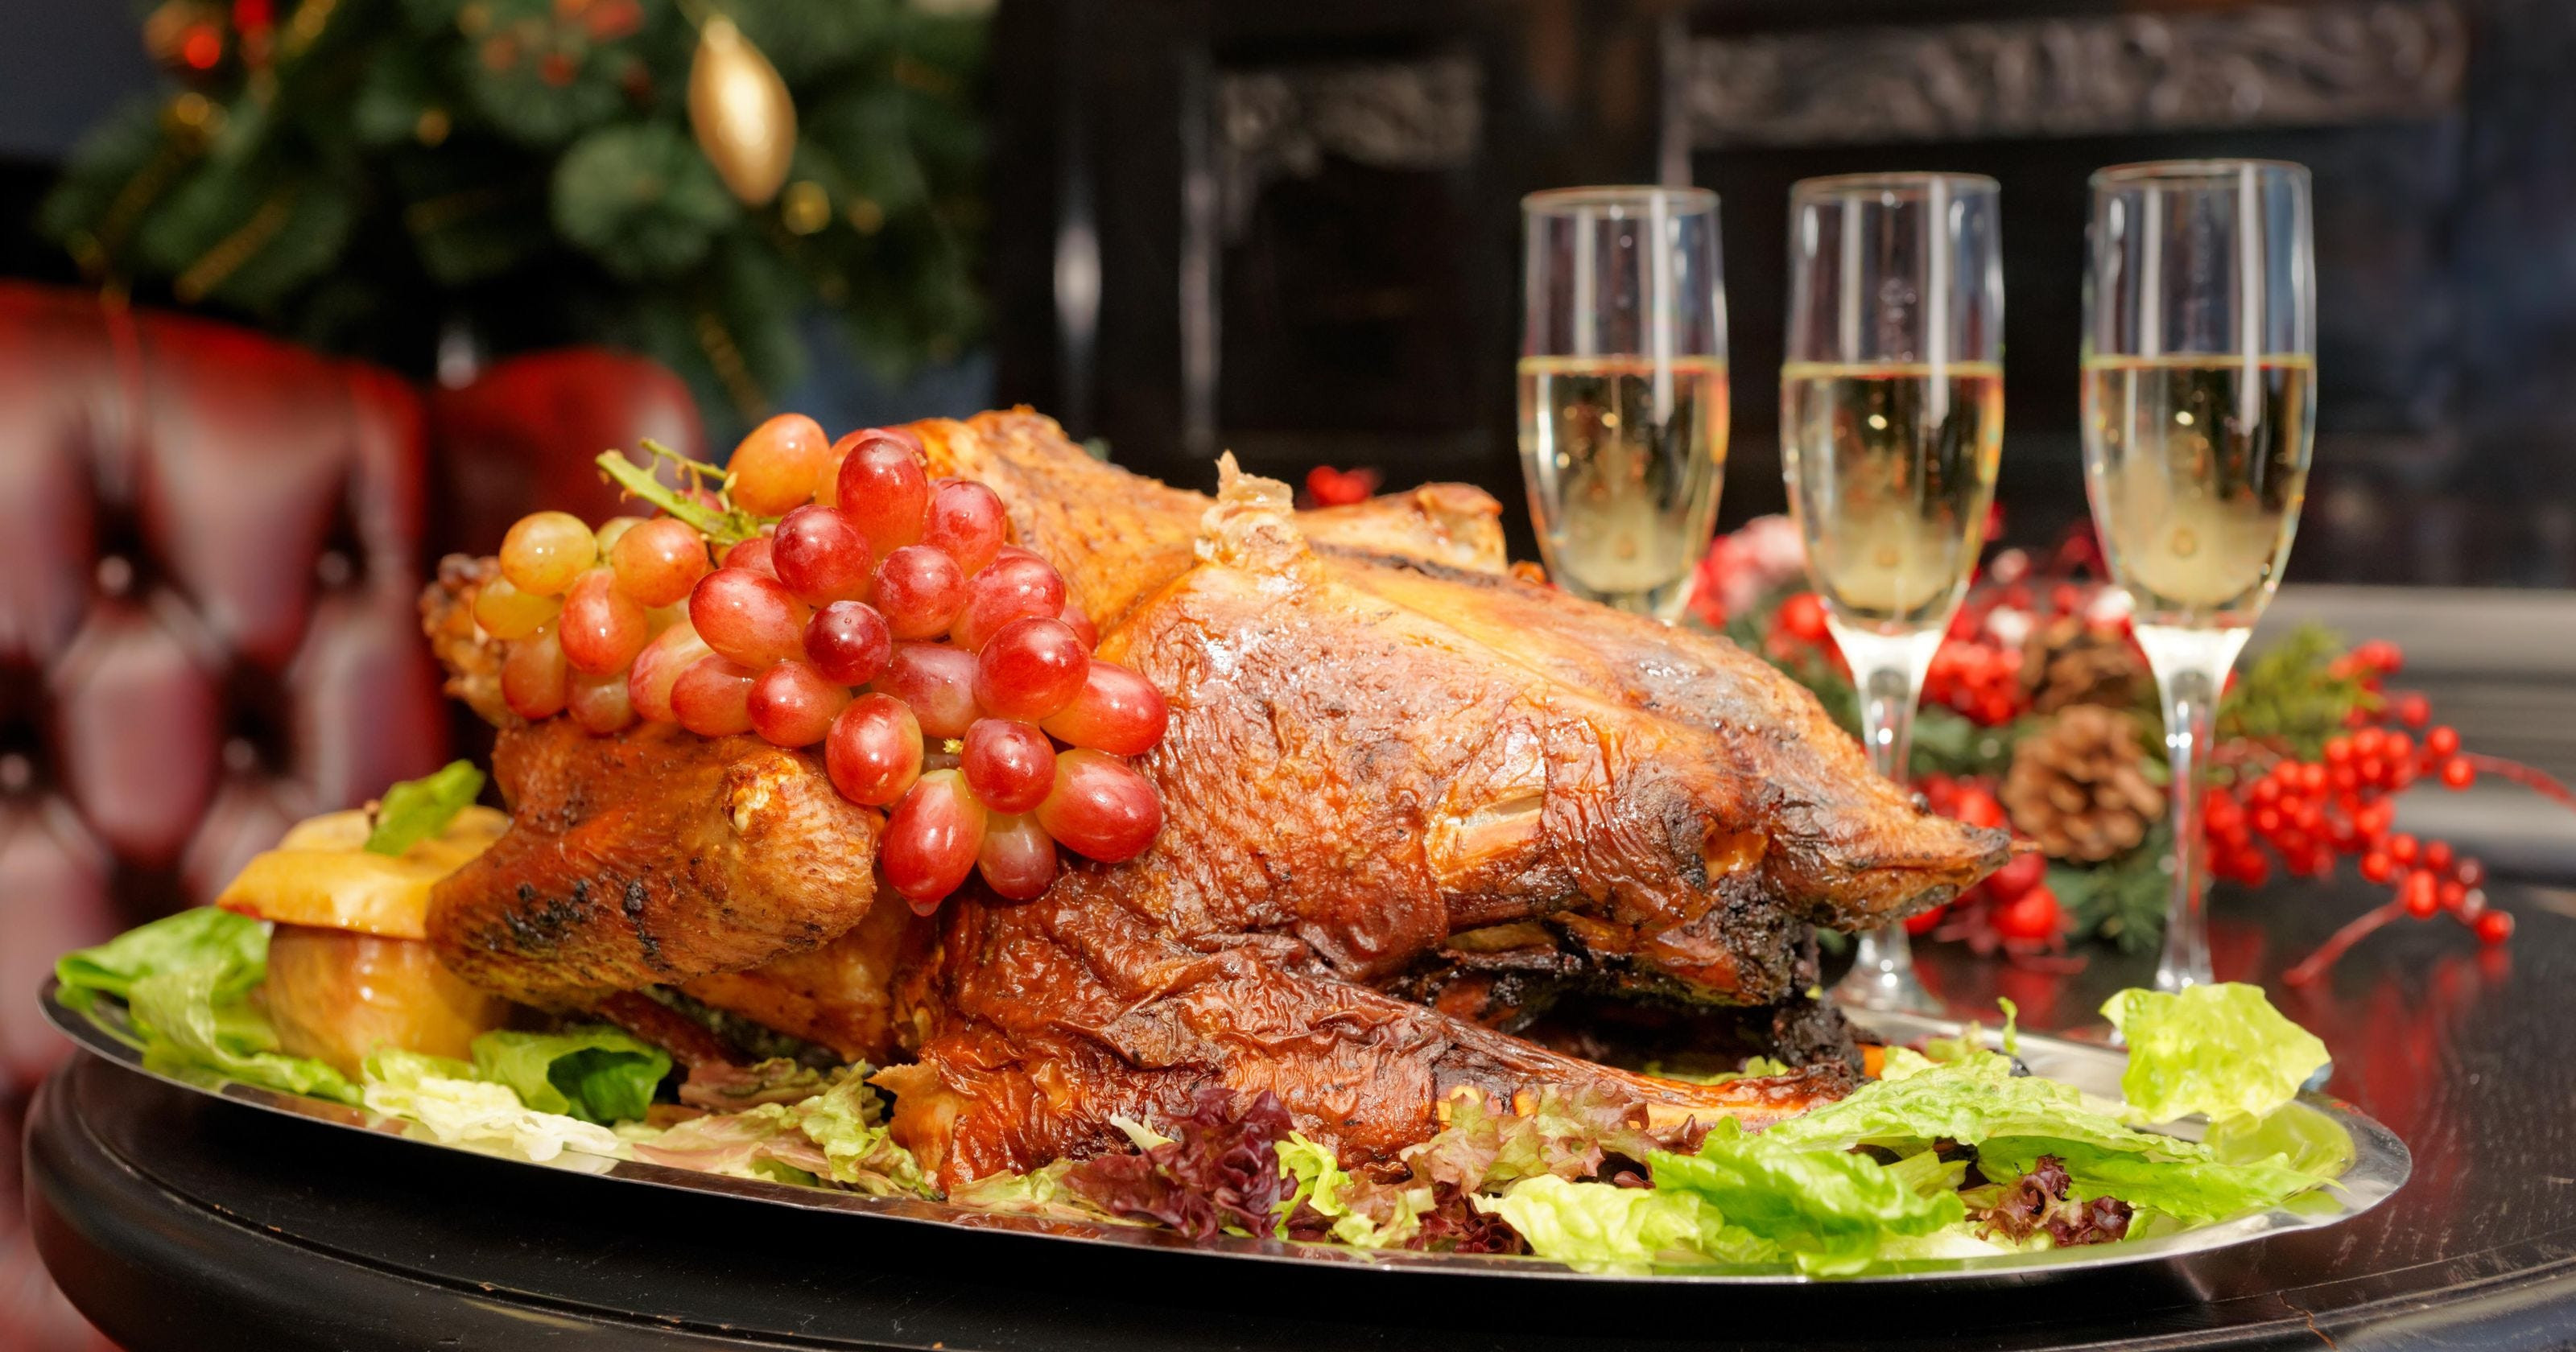 Restaurant Thanksgiving Dinner  Local restaurants offer Thanksgiving dinner options